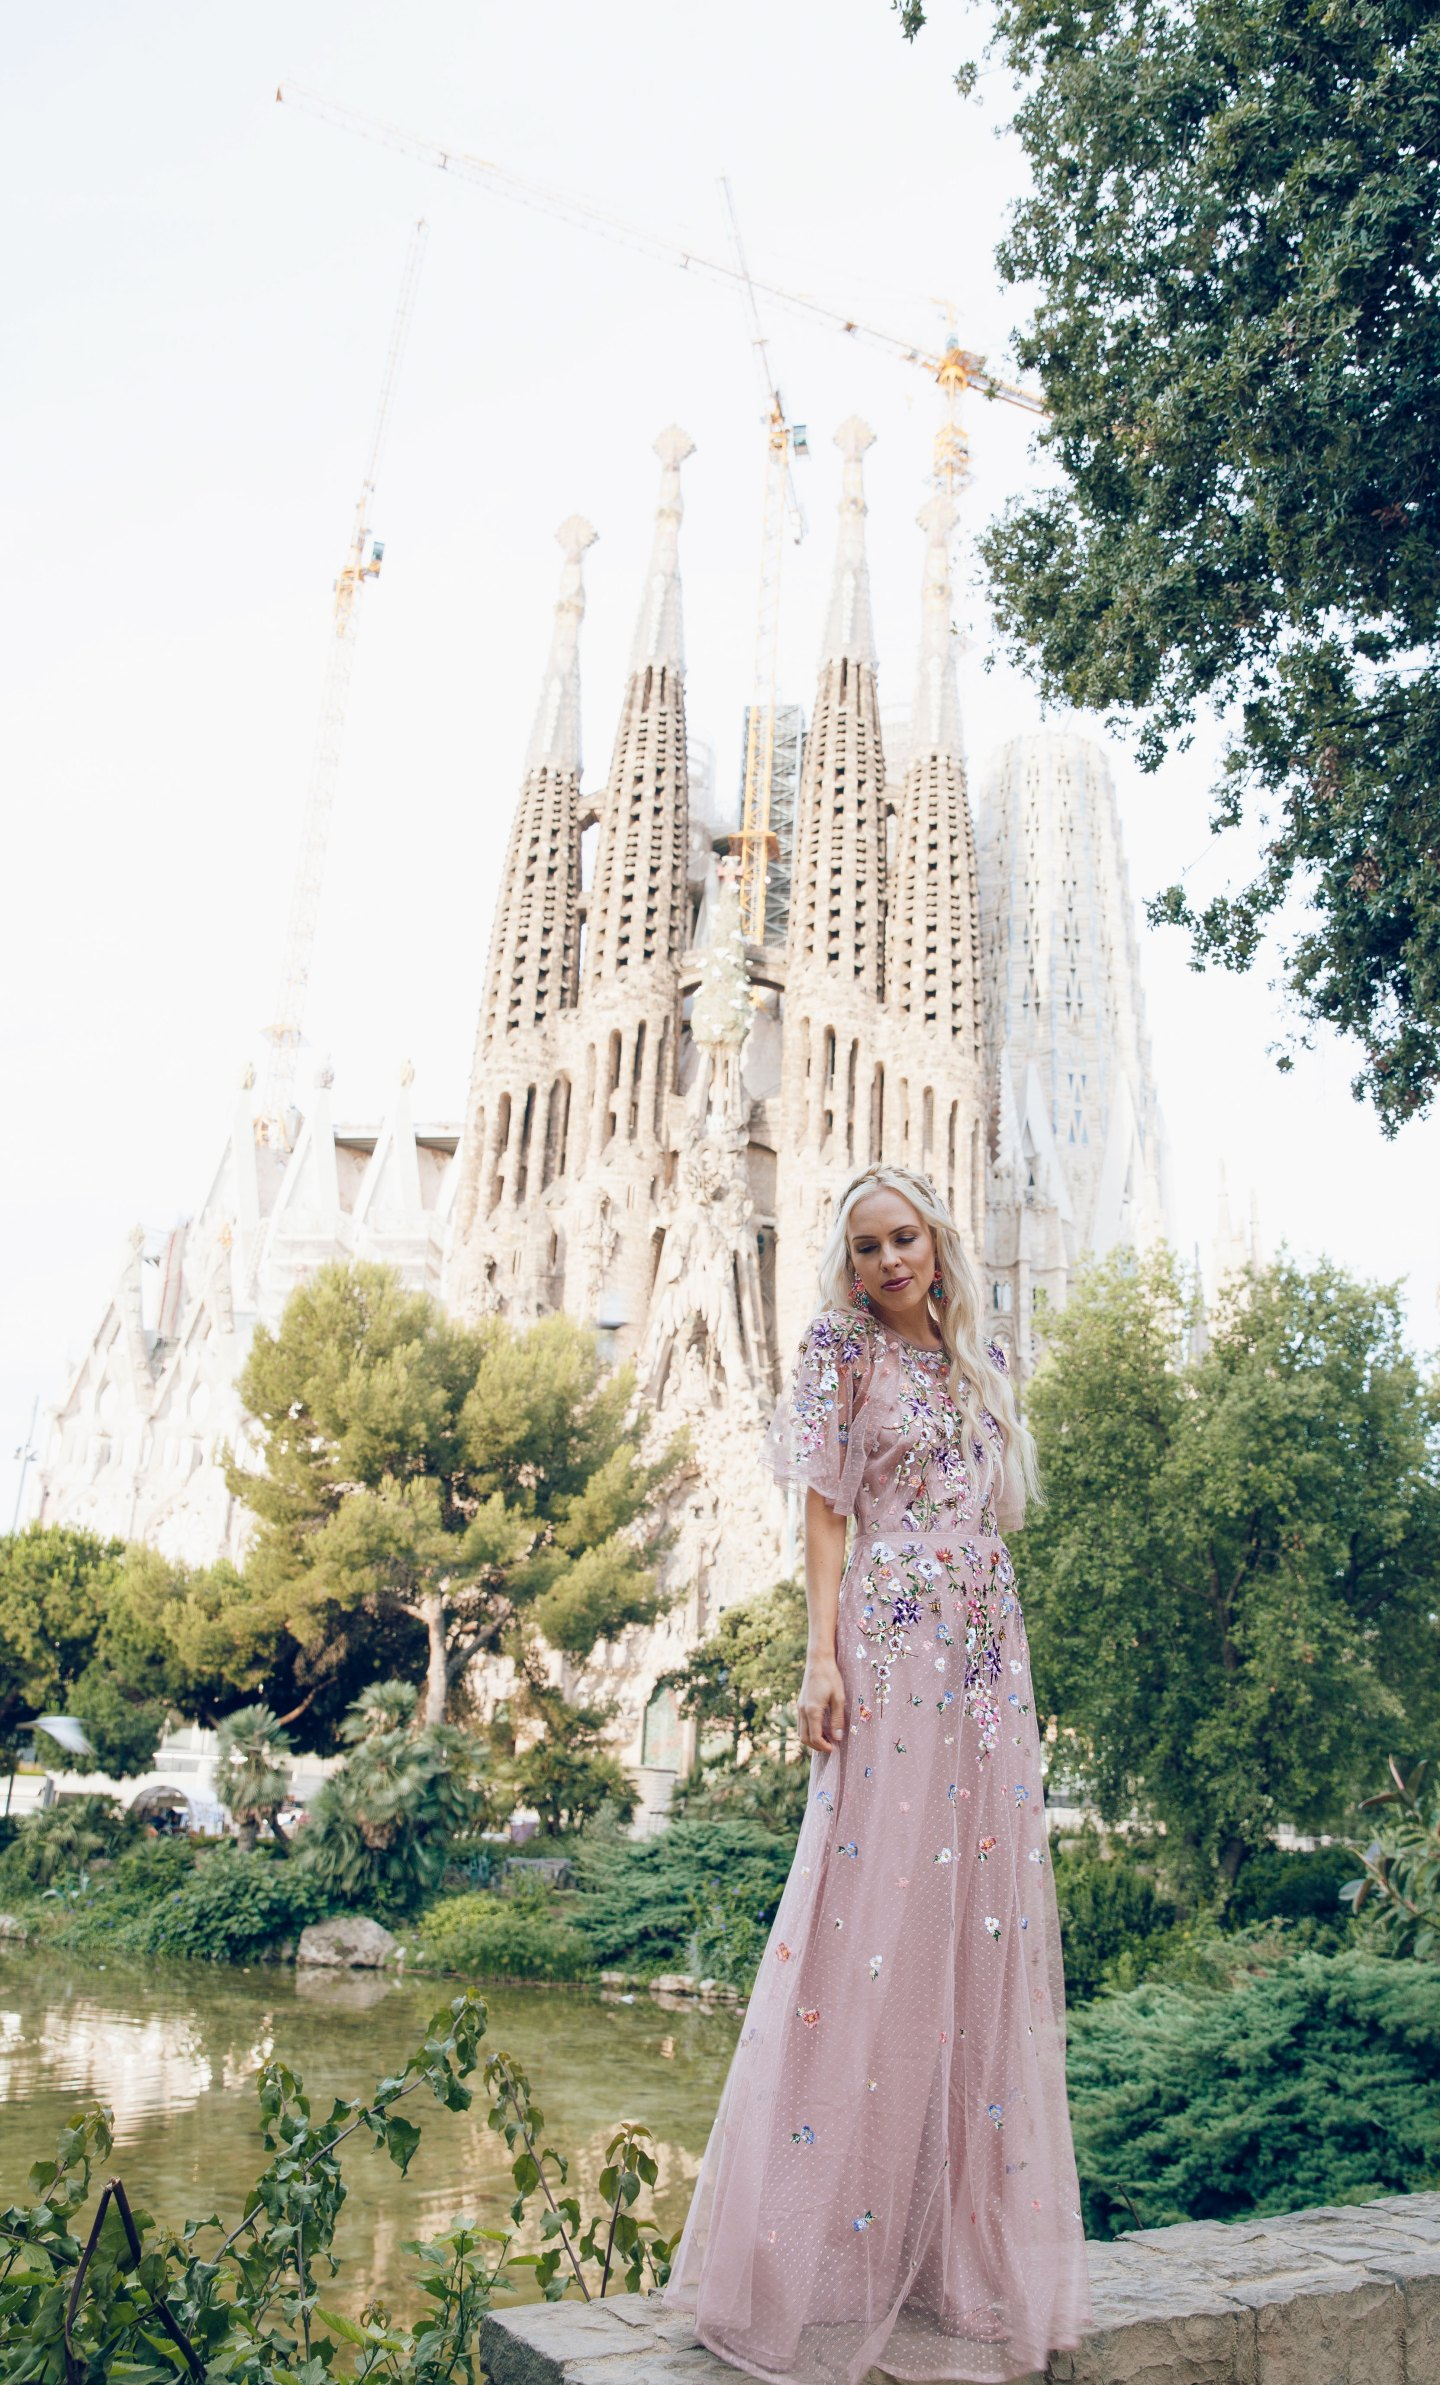 ASOS DESIGN Bridesmaid floral embroidered dobby mesh flutter sleeve maxi dress in barcelona | ASOS floral embroidered maxi dress featured by top San Francisco fashion blog, Lombard and Fifth: image of a blonde woman wearing a floral maxi dress at the Colosseum in Rome